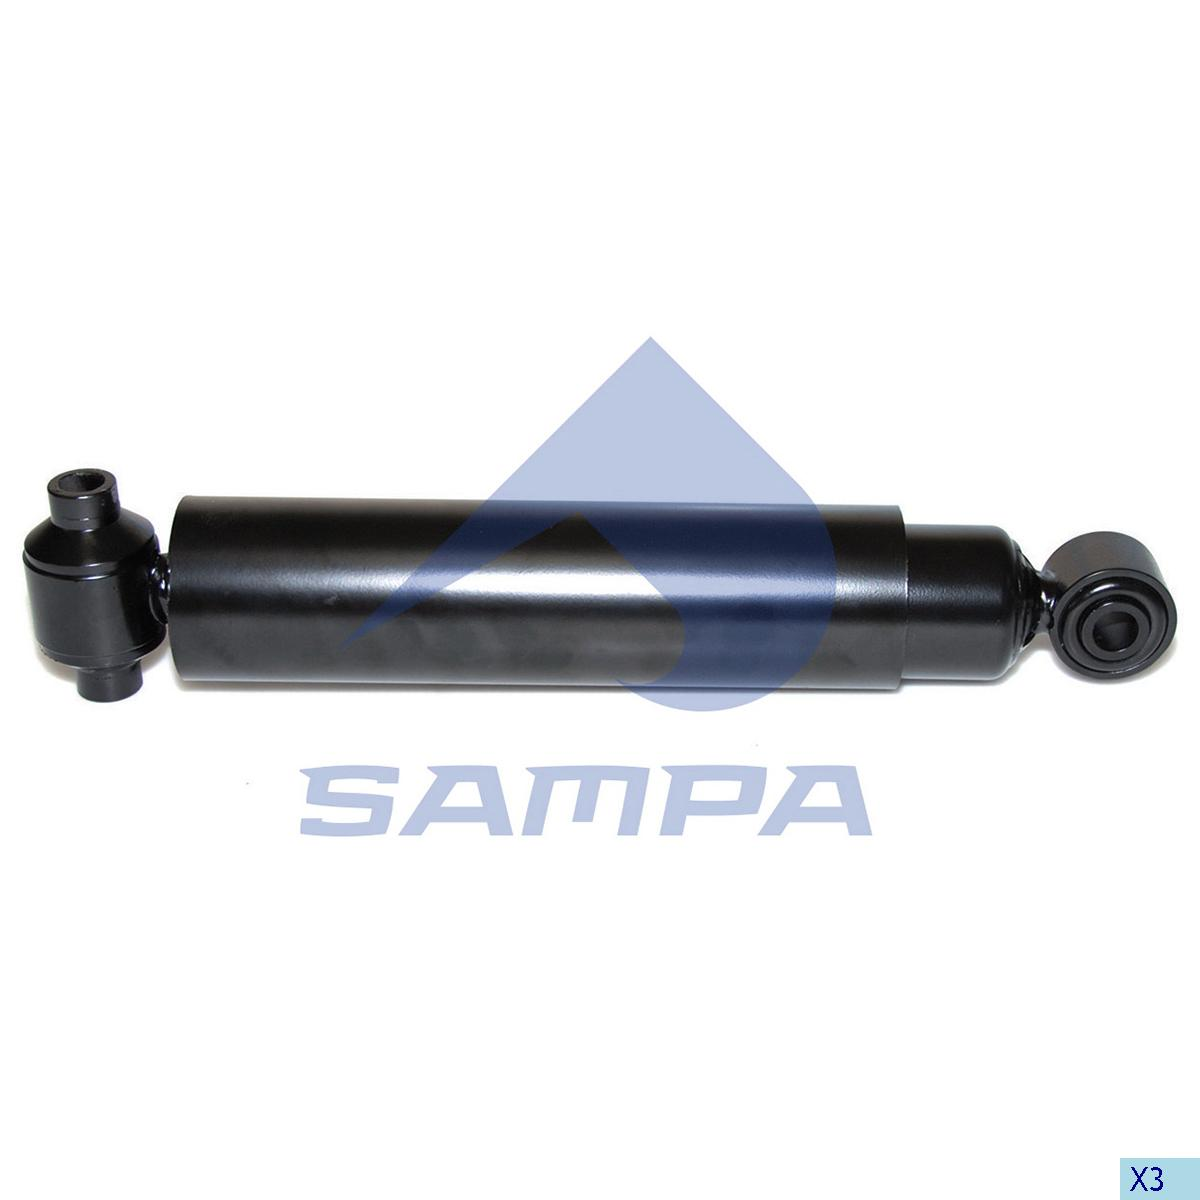 Shock Absorber, Mercedes, Suspension